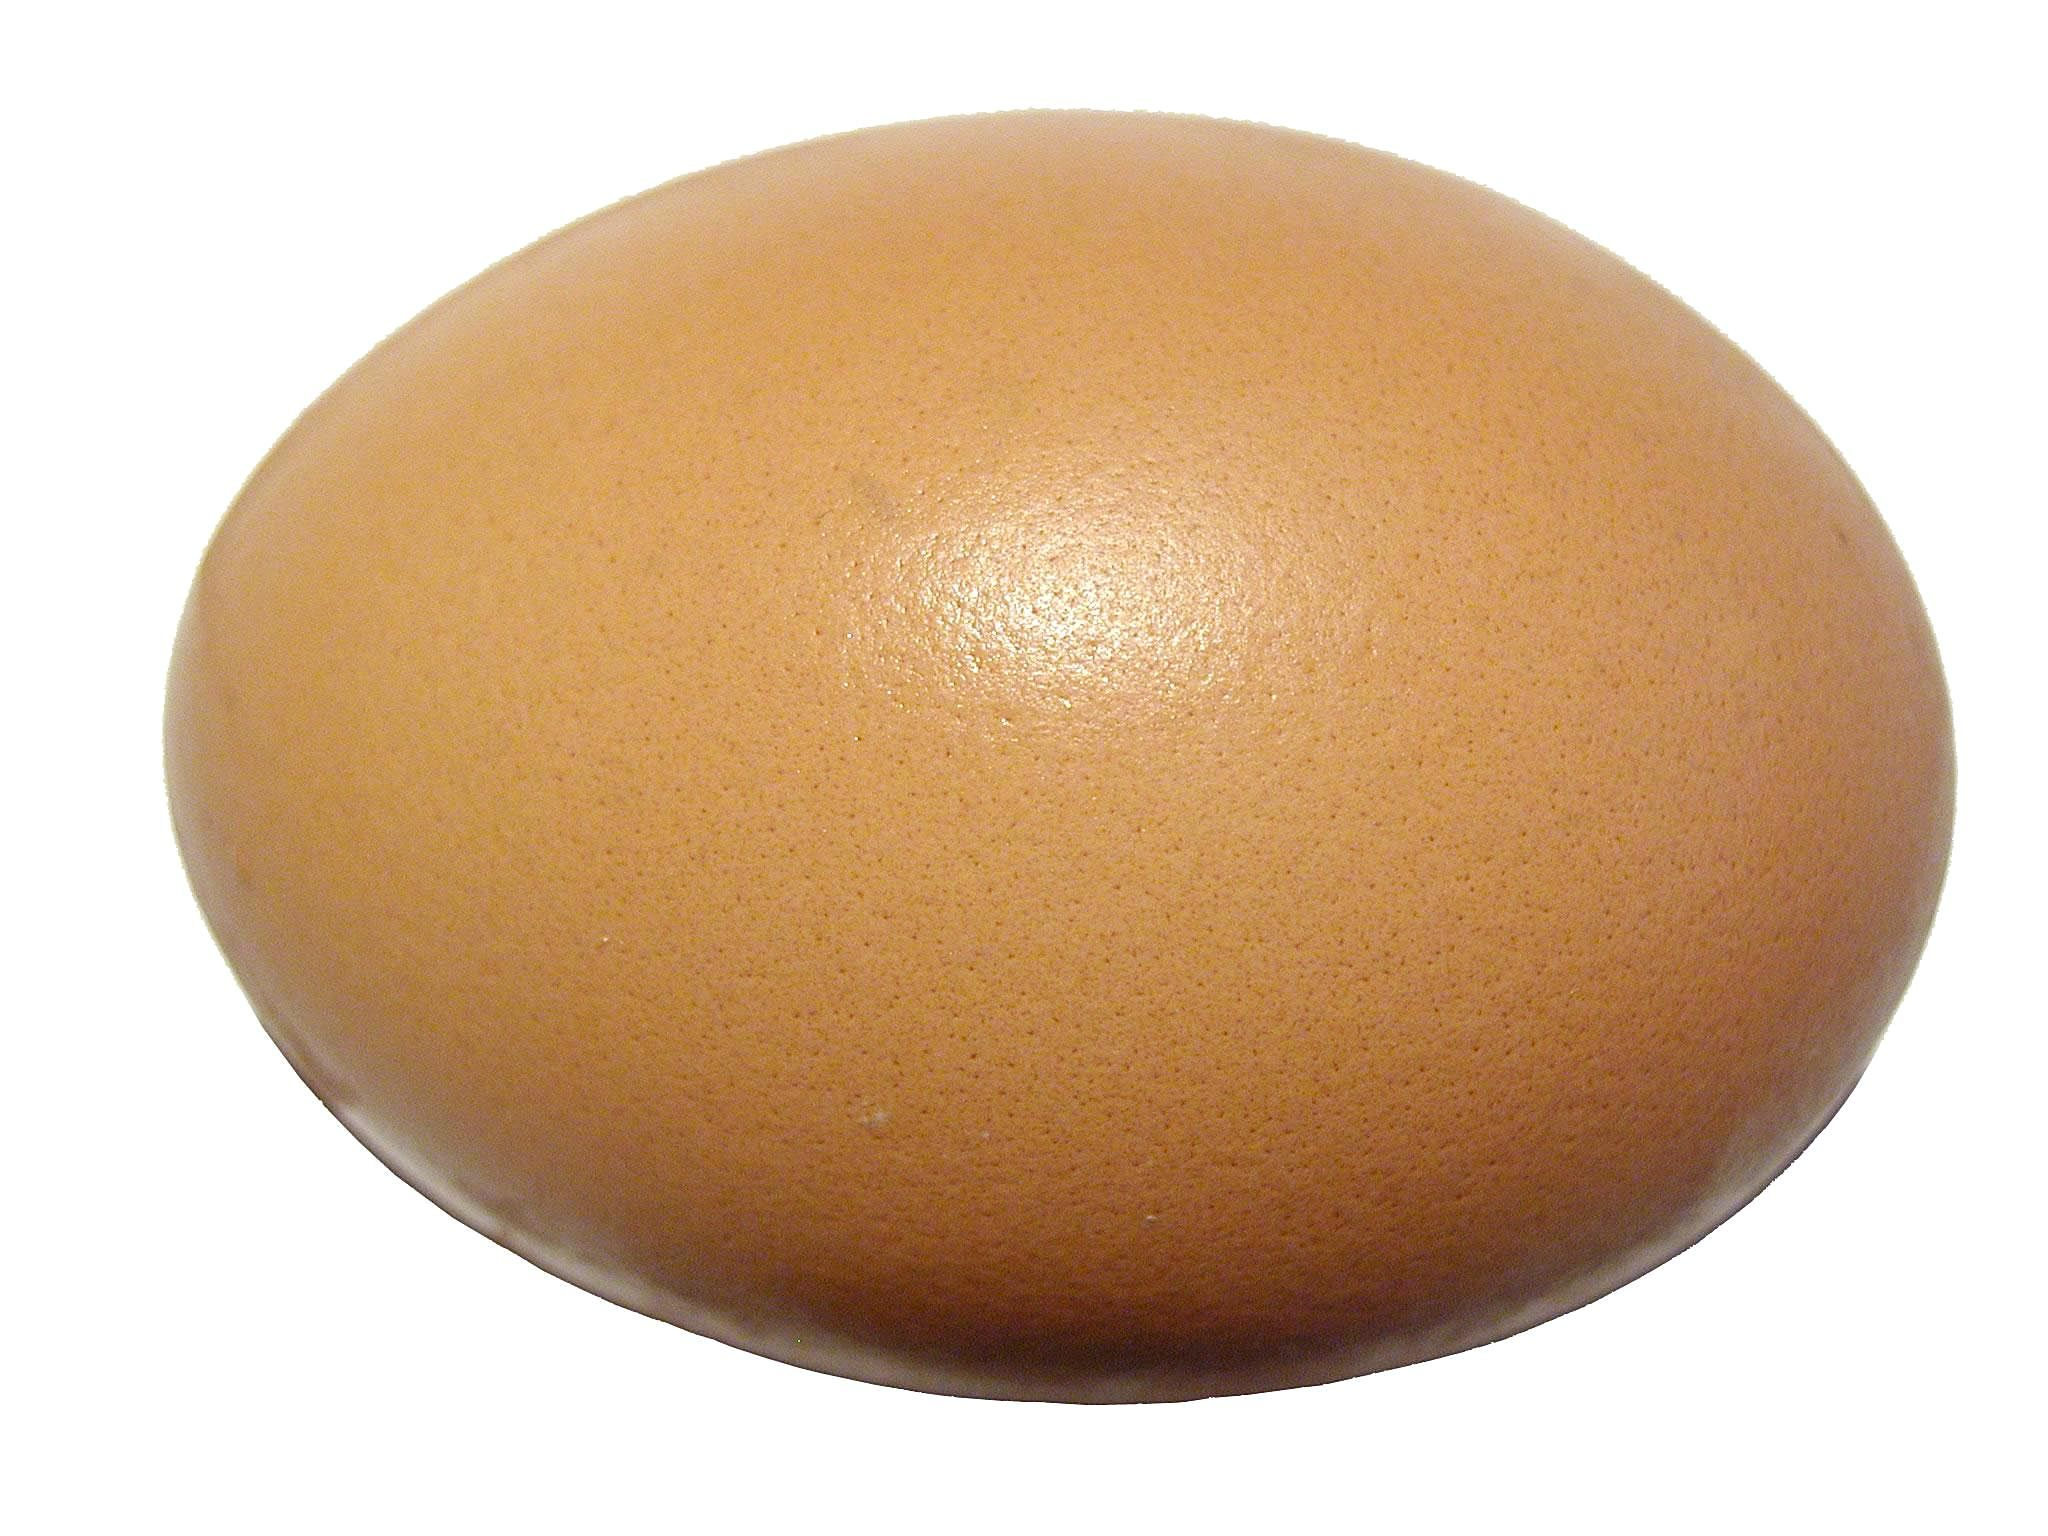 Egg clipart no background.